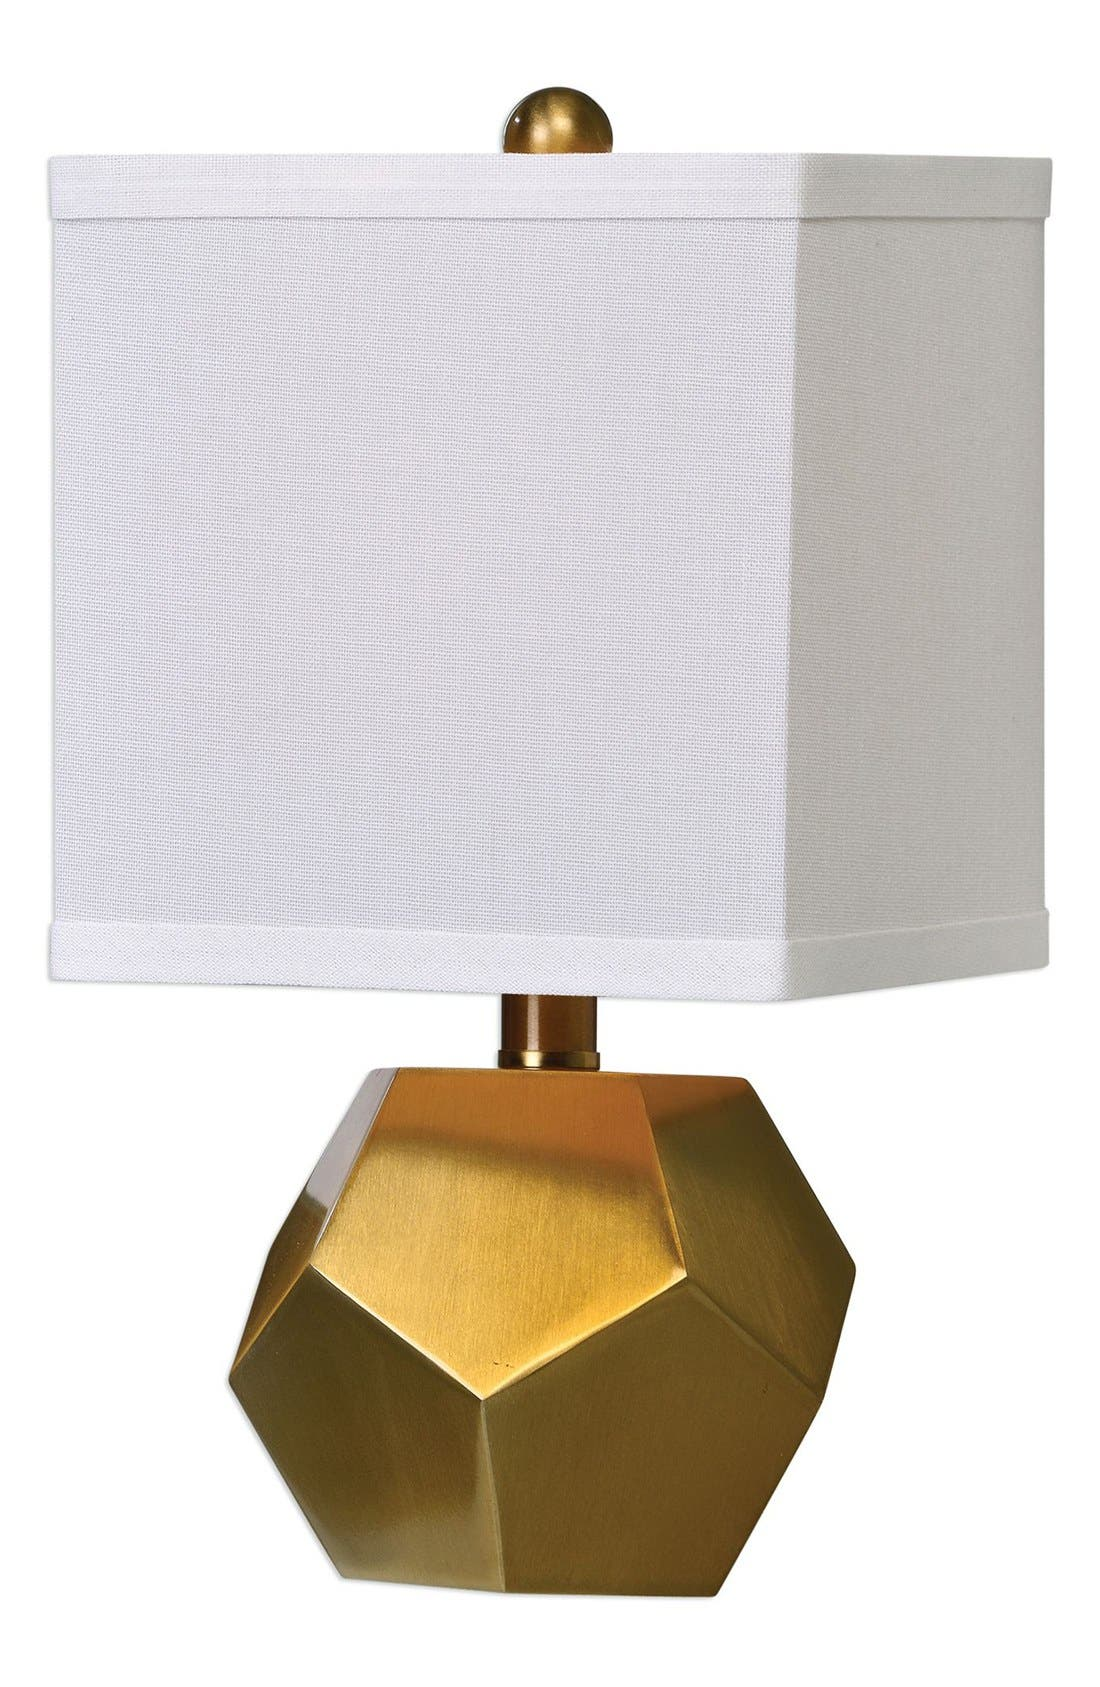 Alternate Image 1 Selected - Uttermost 'Geo Cube' Lamps (Set of 2)